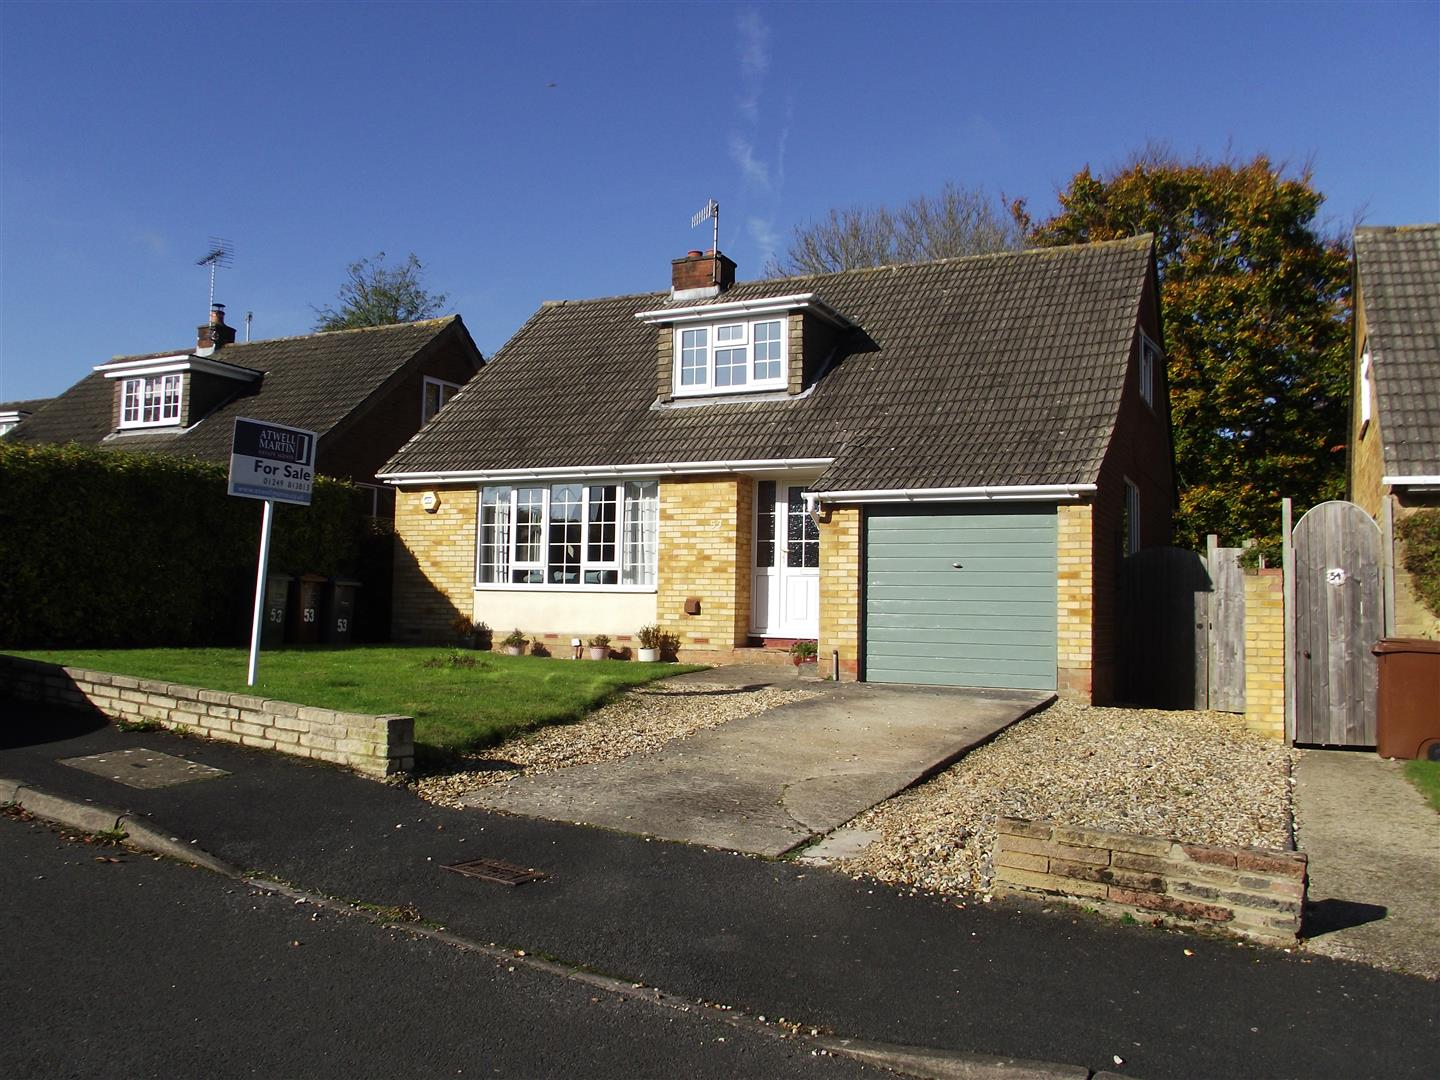 3 Bedrooms Detached House for sale in Wessington Park, Calne